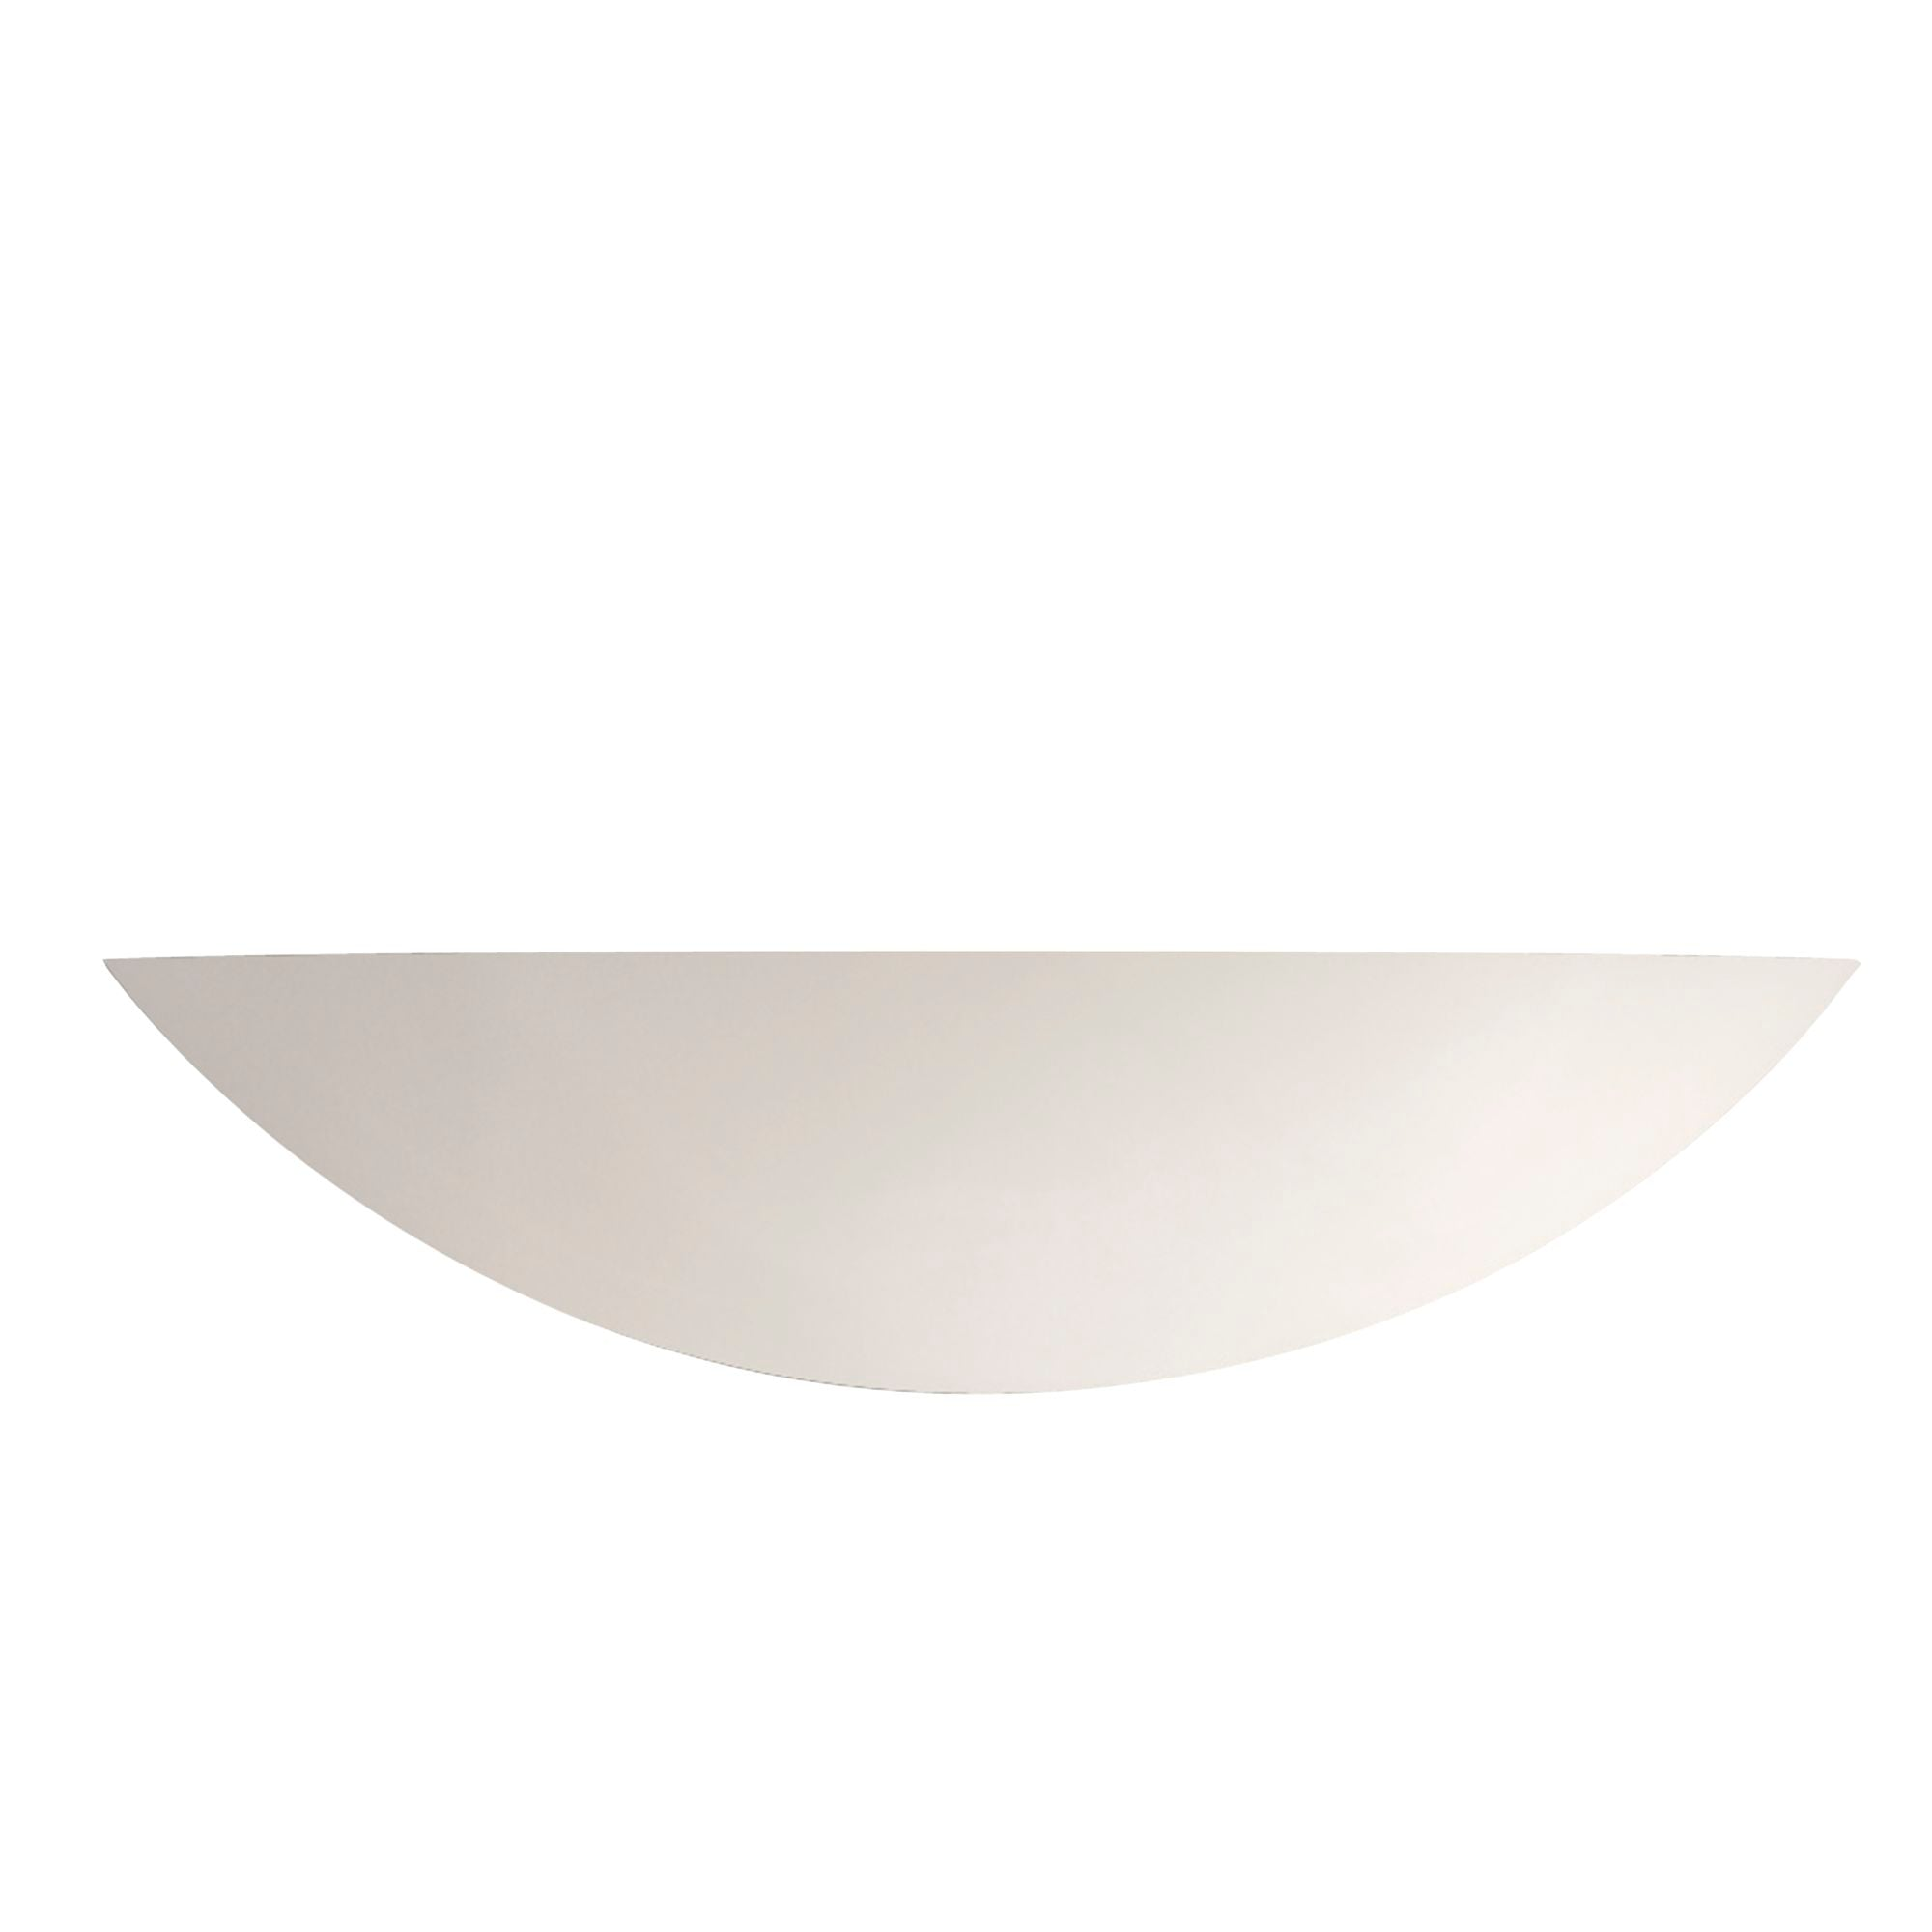 GYPSUM CERAMIC WALL LIGHT - Dia 40cm UPLIGHTER